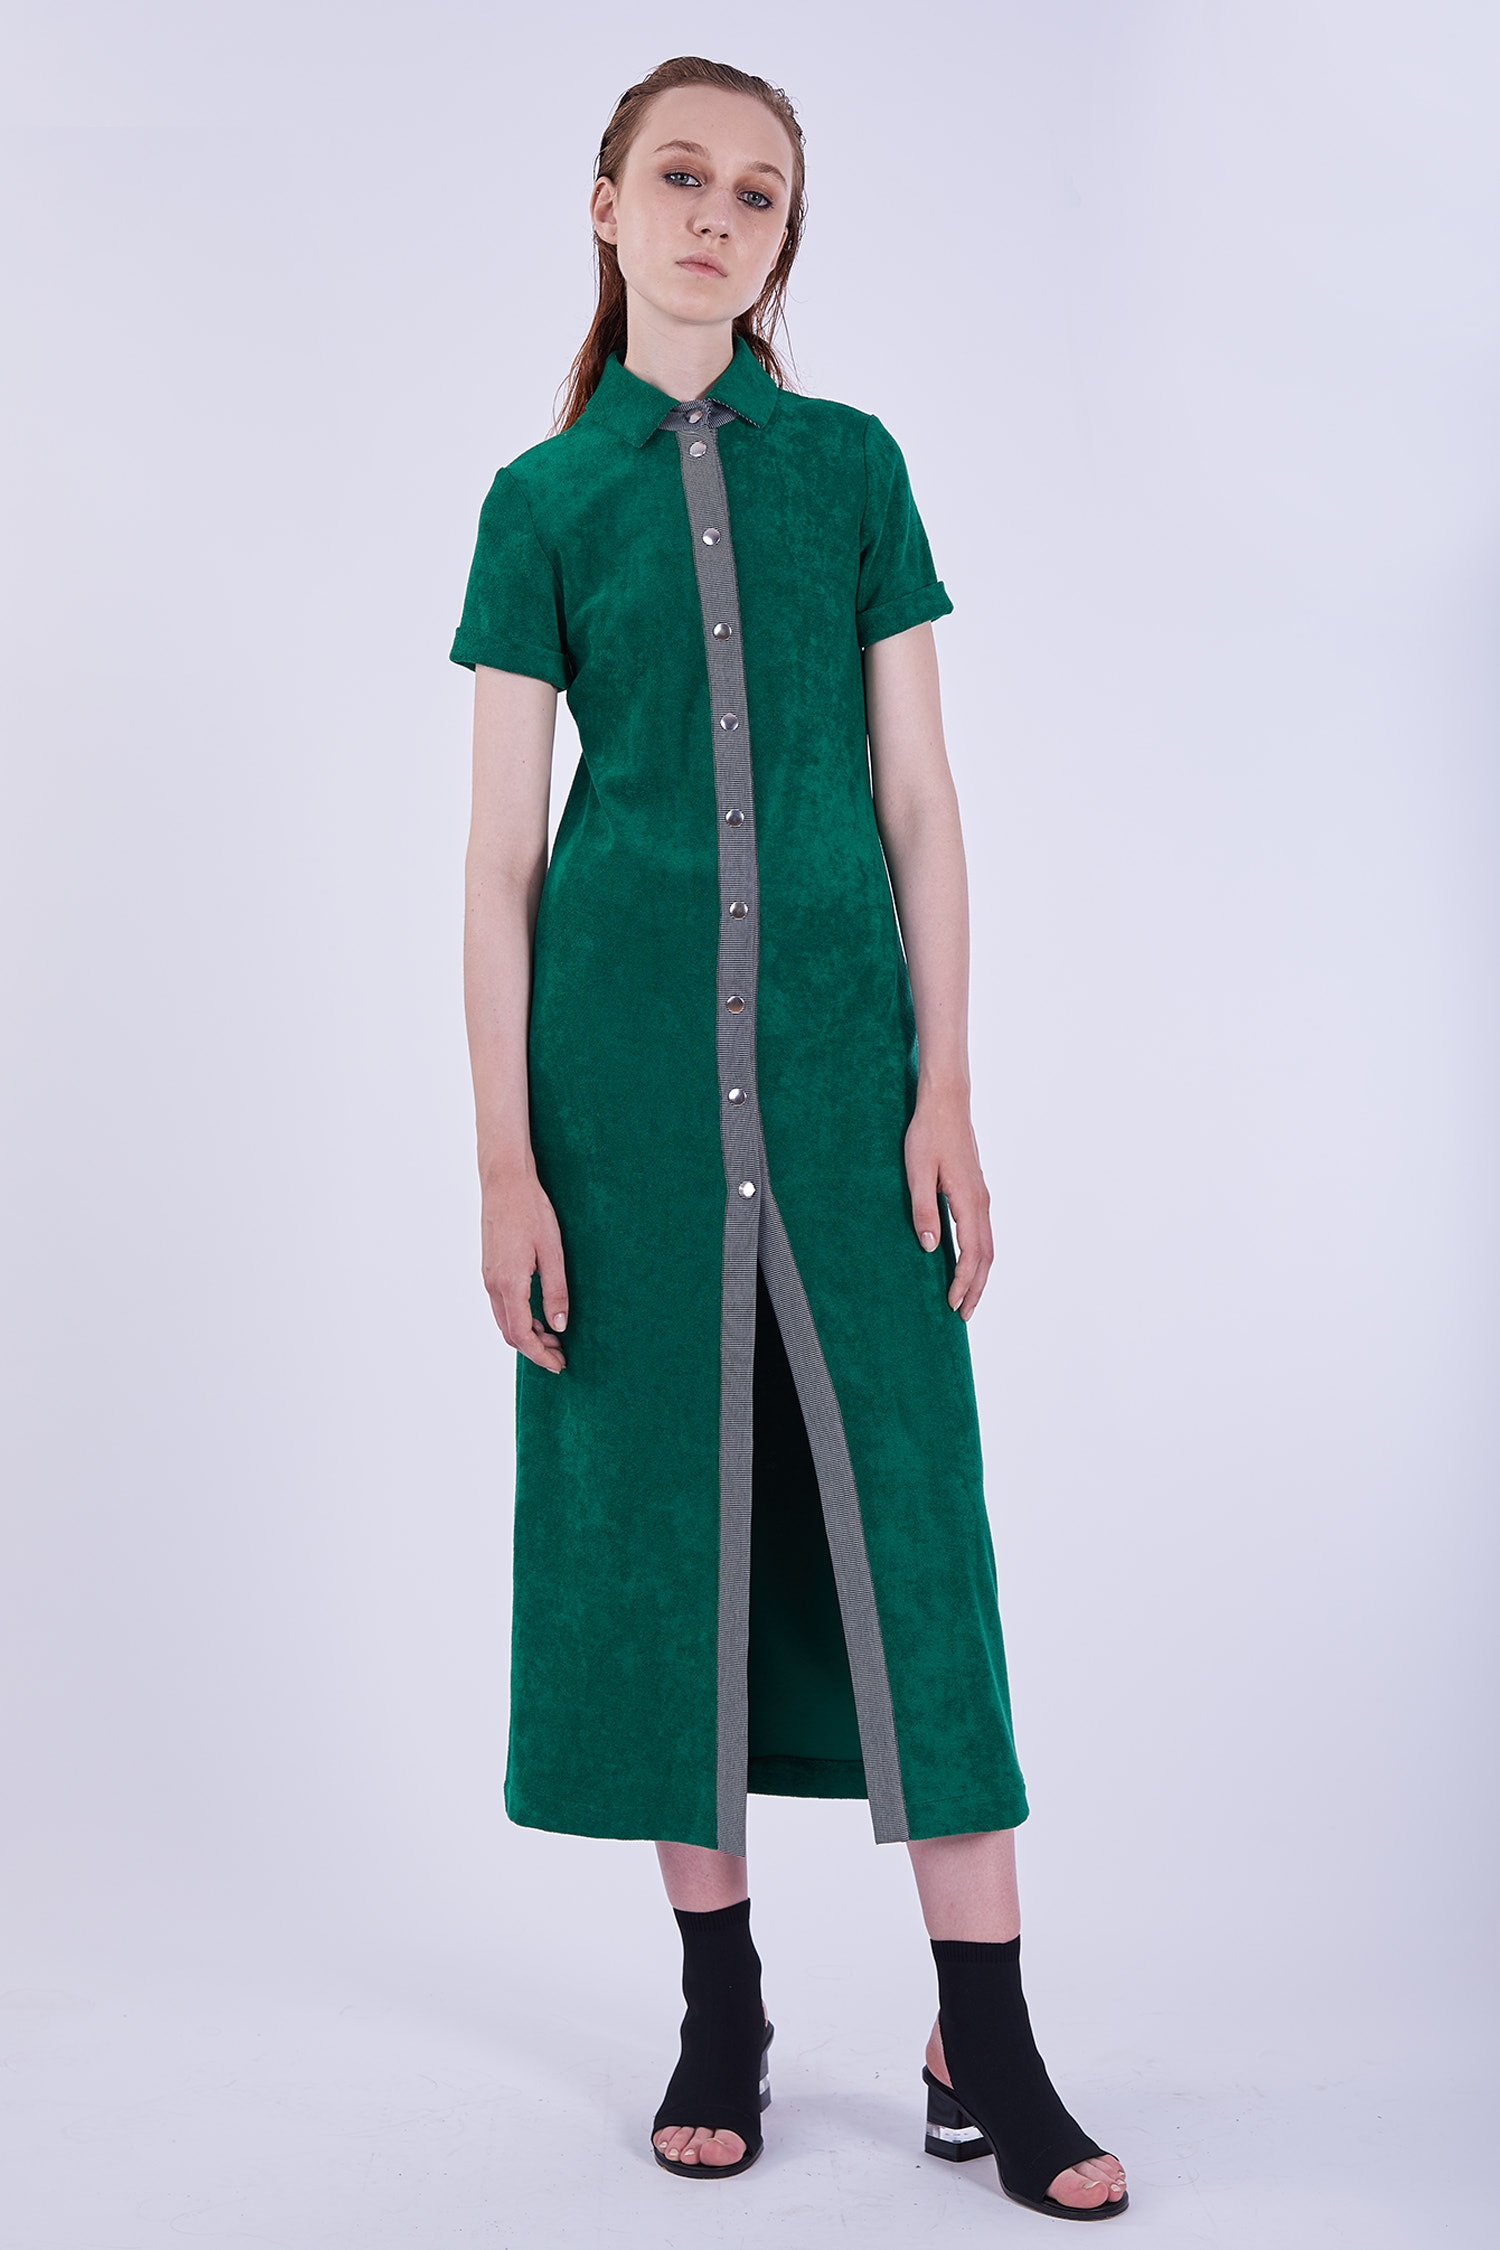 Acephala Ps2020 Green Long Terry Cotton Dress Sukienka Zielona Frotte Dluga Front